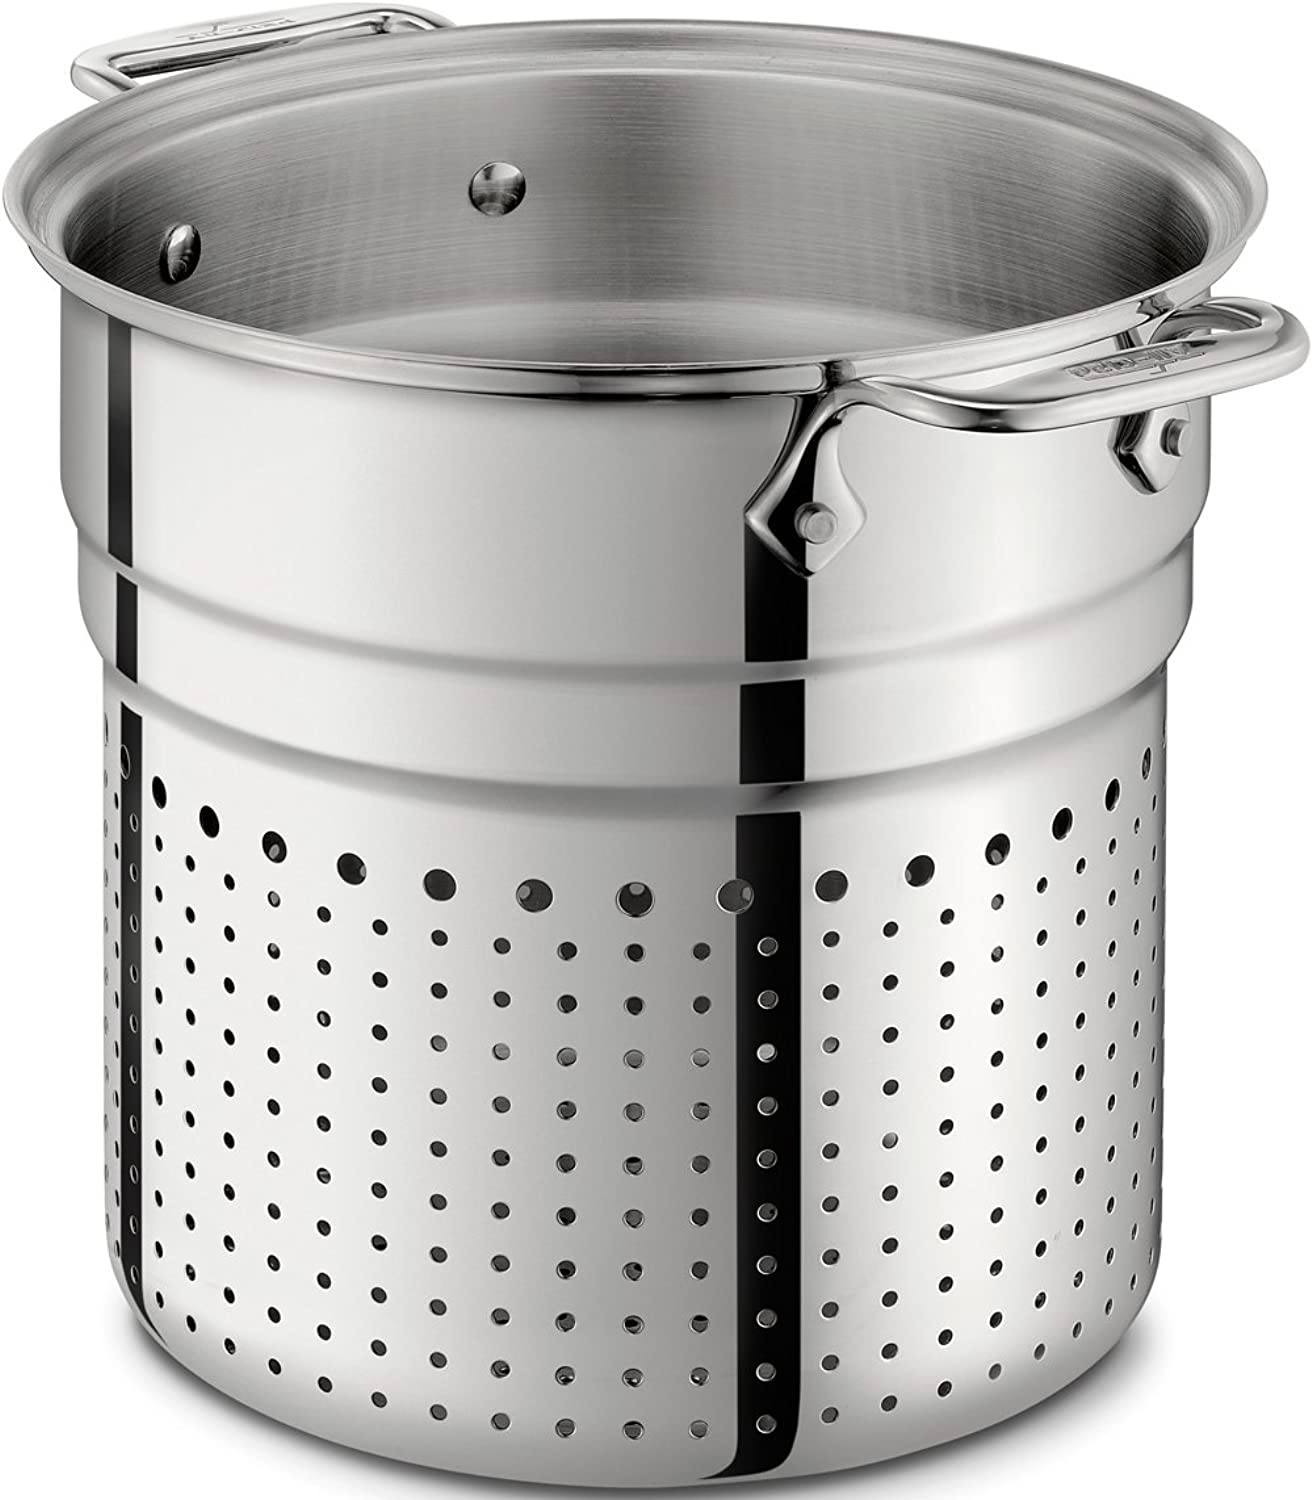 All-Clad 37072-I D Stainless Steel Tri-Ply Dishwasher Safe 7-Quart Pasta Colander Insert   Cookware, Silver